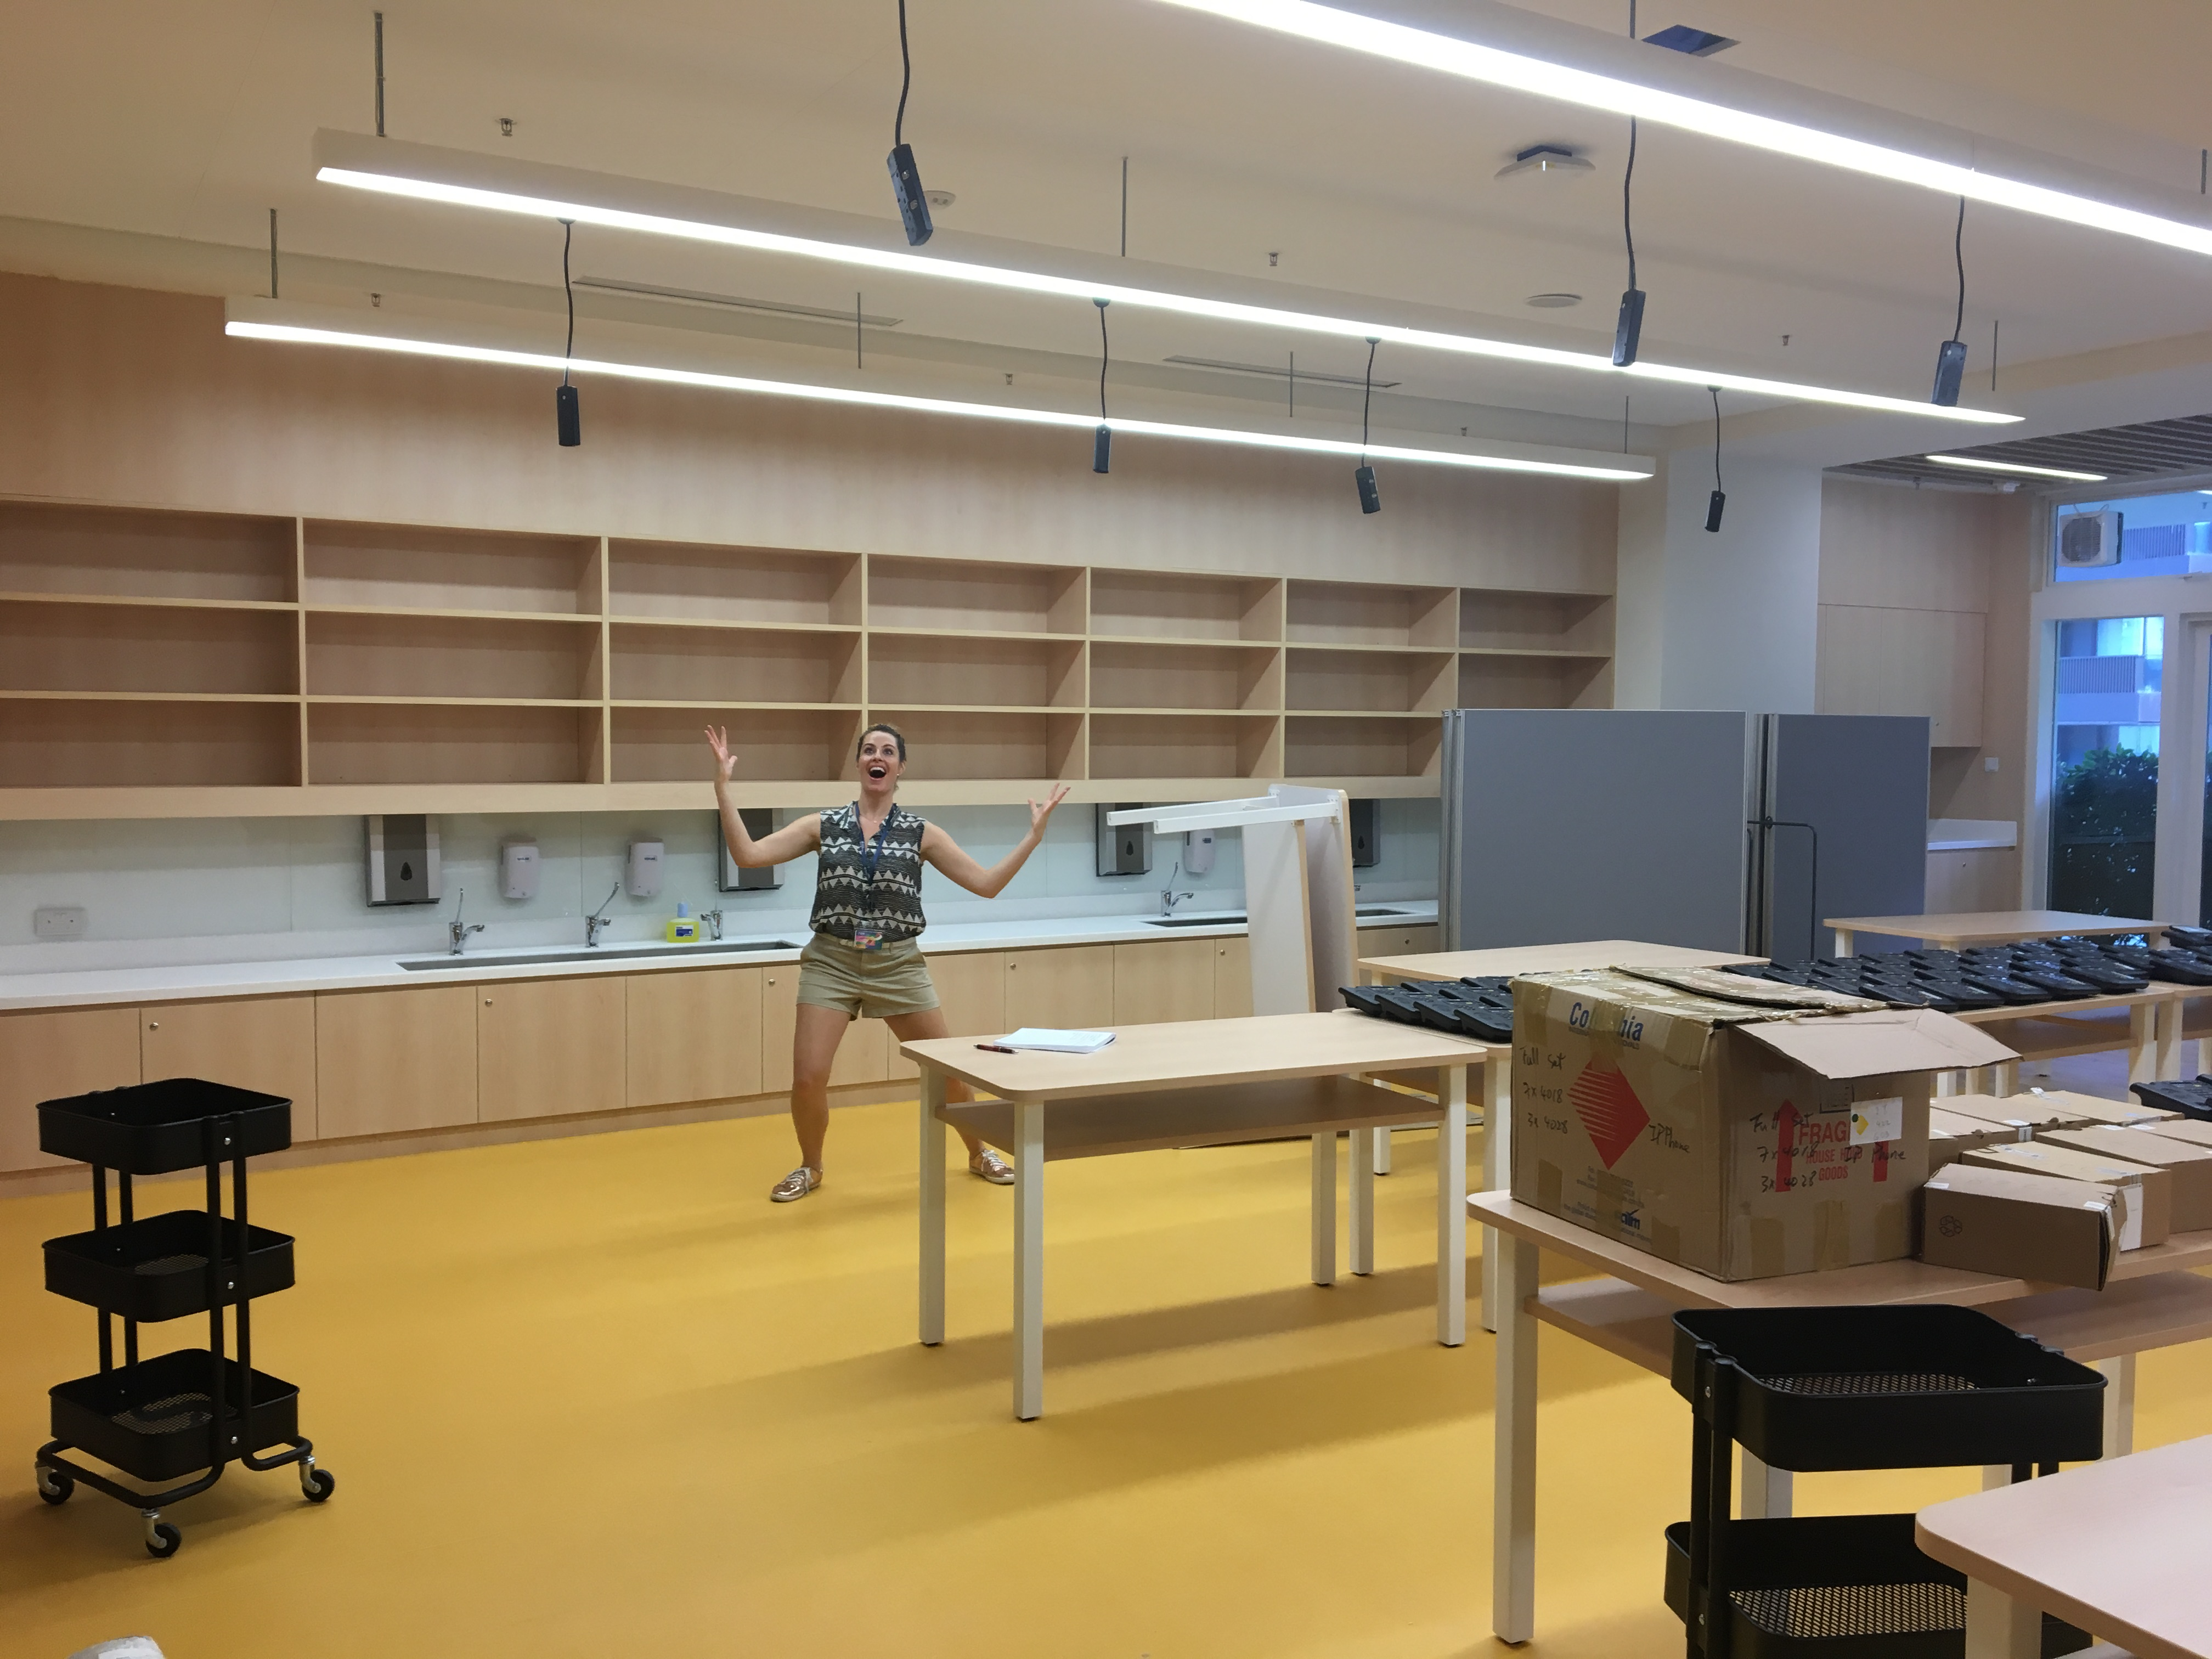 In Addition To This Amazing Space For Students, The Art Room Also Has  Amenities Just For The Teachers. From An Adult Sink And Storage Area To An  Office That ...